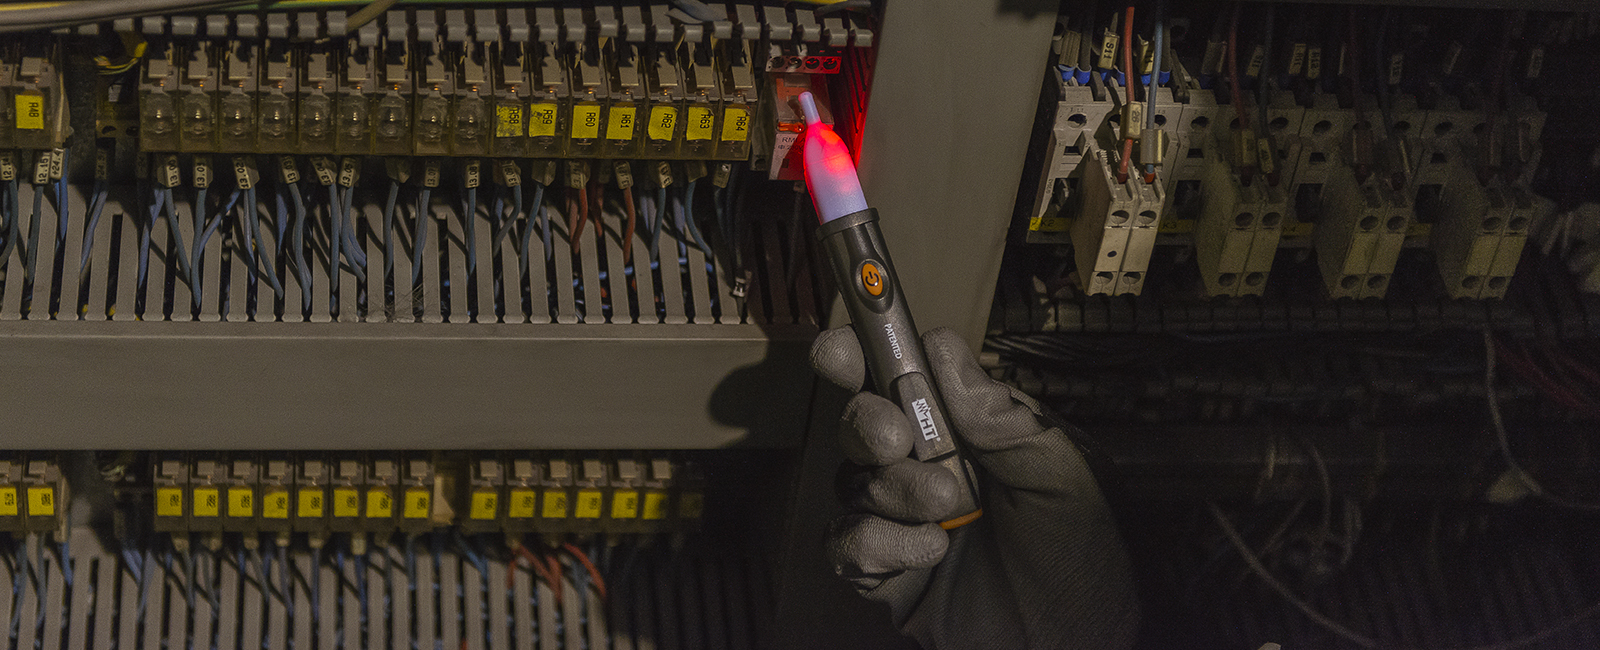 Voltage detectors and others